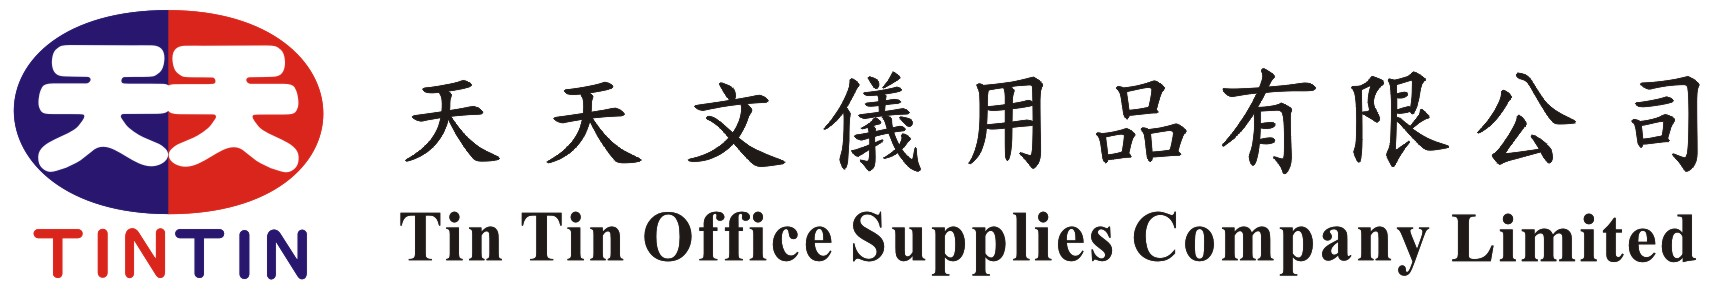 Tin Tin Office Supplies Company Limited